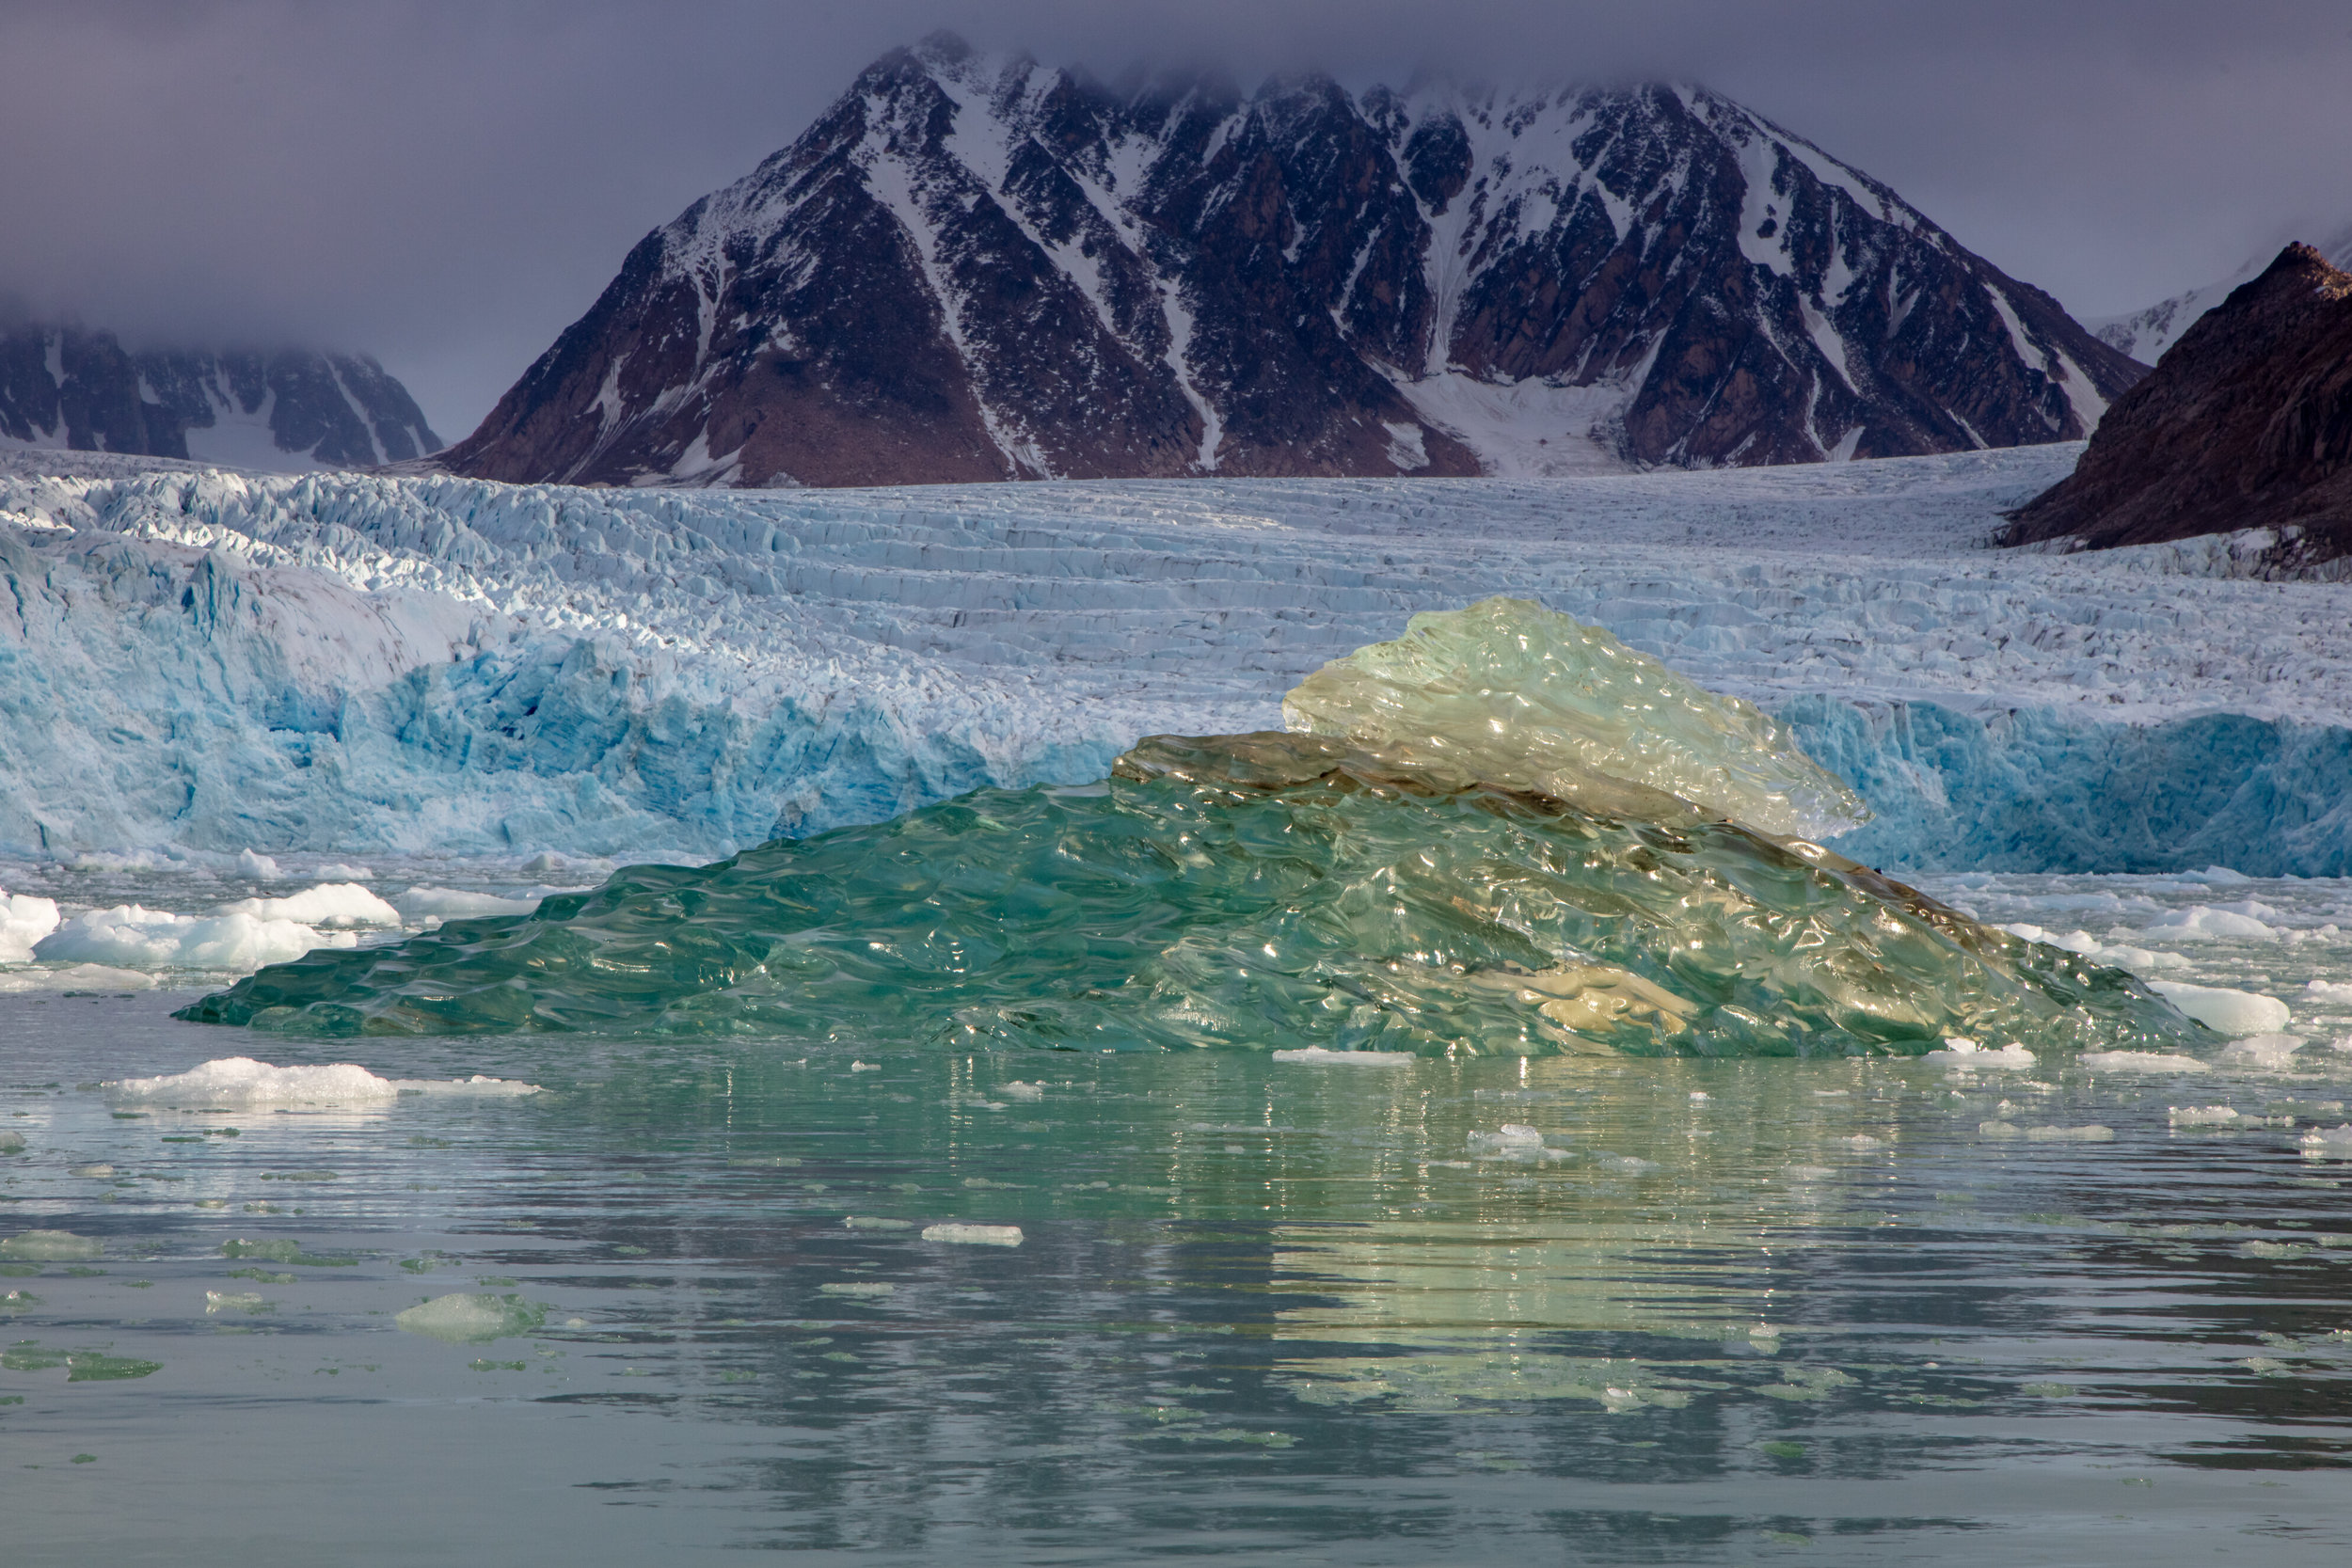 A blue iceberg drifts out to sea along the mars-like tundra of Northern Spitsbergen. Today, the archipelago of Svalbard is located just a few hundred miles from the North Pole, but this was not always the case. When these brilliant red sandstones formed 400 million years ago, the original land mass that would become Svalbard was nearly at the equator, 6000 miles south. Newly formed mountains were eroded by rivers that flowed through the once hot desert climate and the sand and mud deposited, compressing and forming stone. Though Svalbard has seen many changes along its slow journey northward, the modern geological changes are now driven by humans rather than the natural forces of nature. As the climate warms, the rapid disappearance of ice is exposing the barren rocks of Svalbard once again, possibly for the first time in thousands of years.